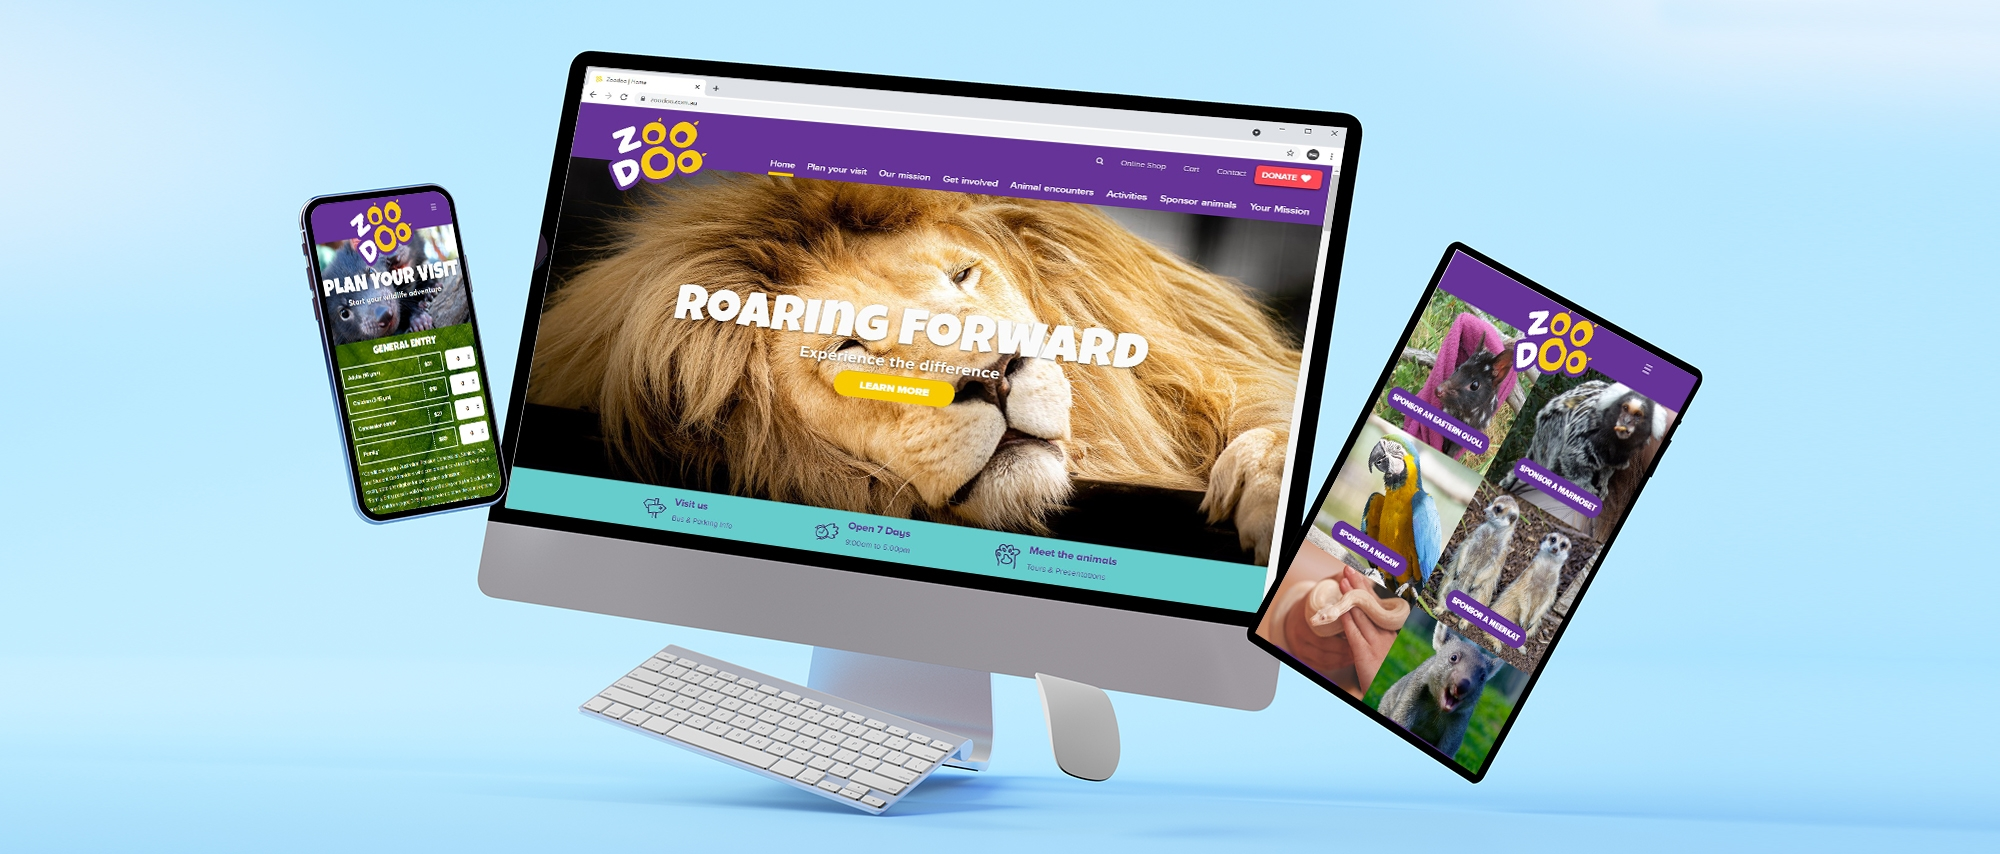 https://marketinggroup.com.au/assets/img/projects/ZooDoo_Feature.jpg